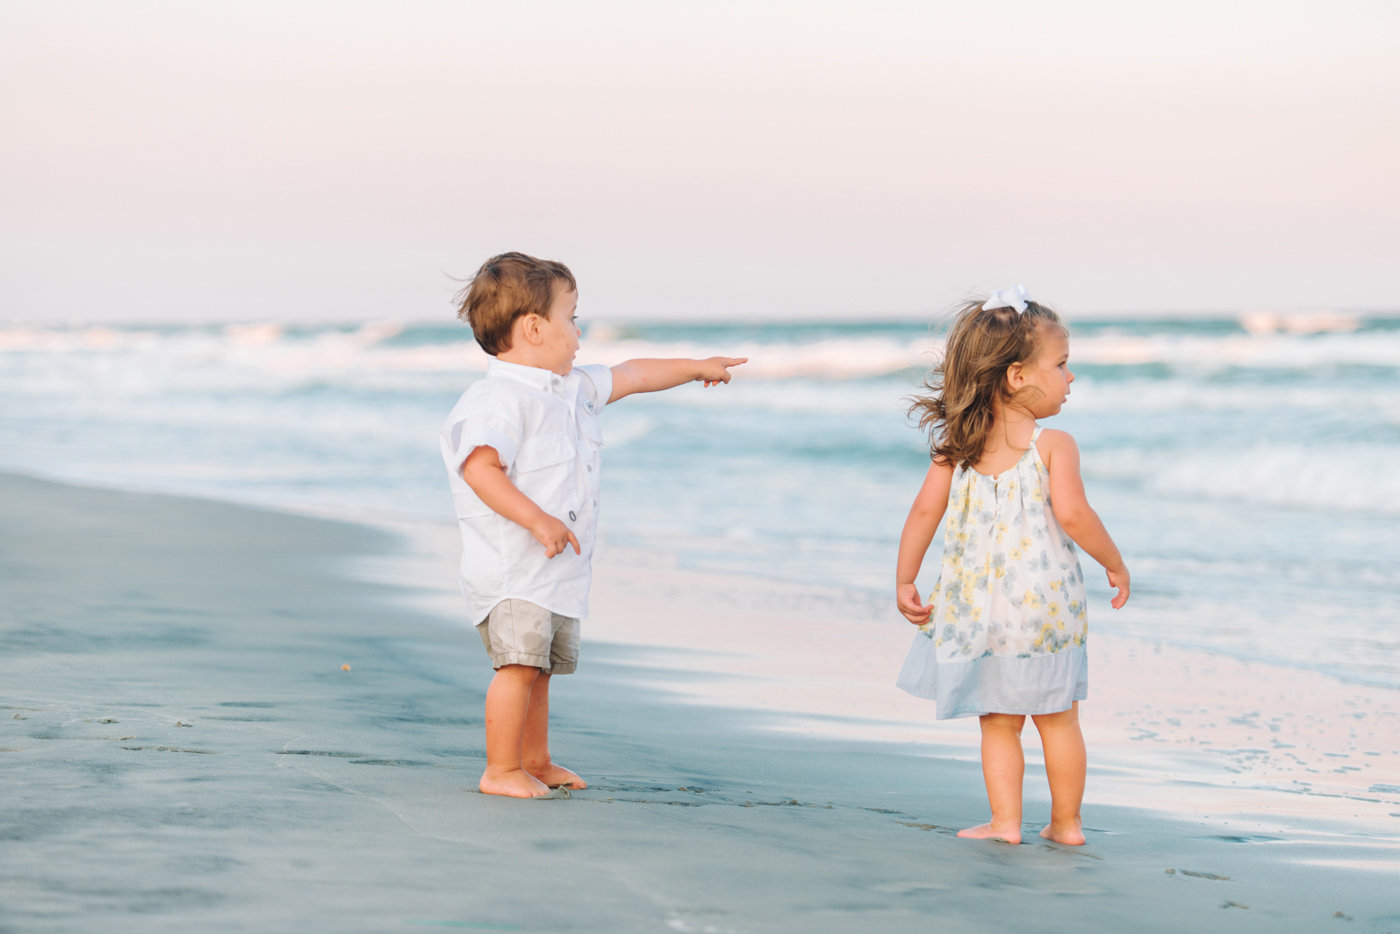 Family Photography | Family Beach Pictures | Myrtle Beach Family Session Tips and Ideas